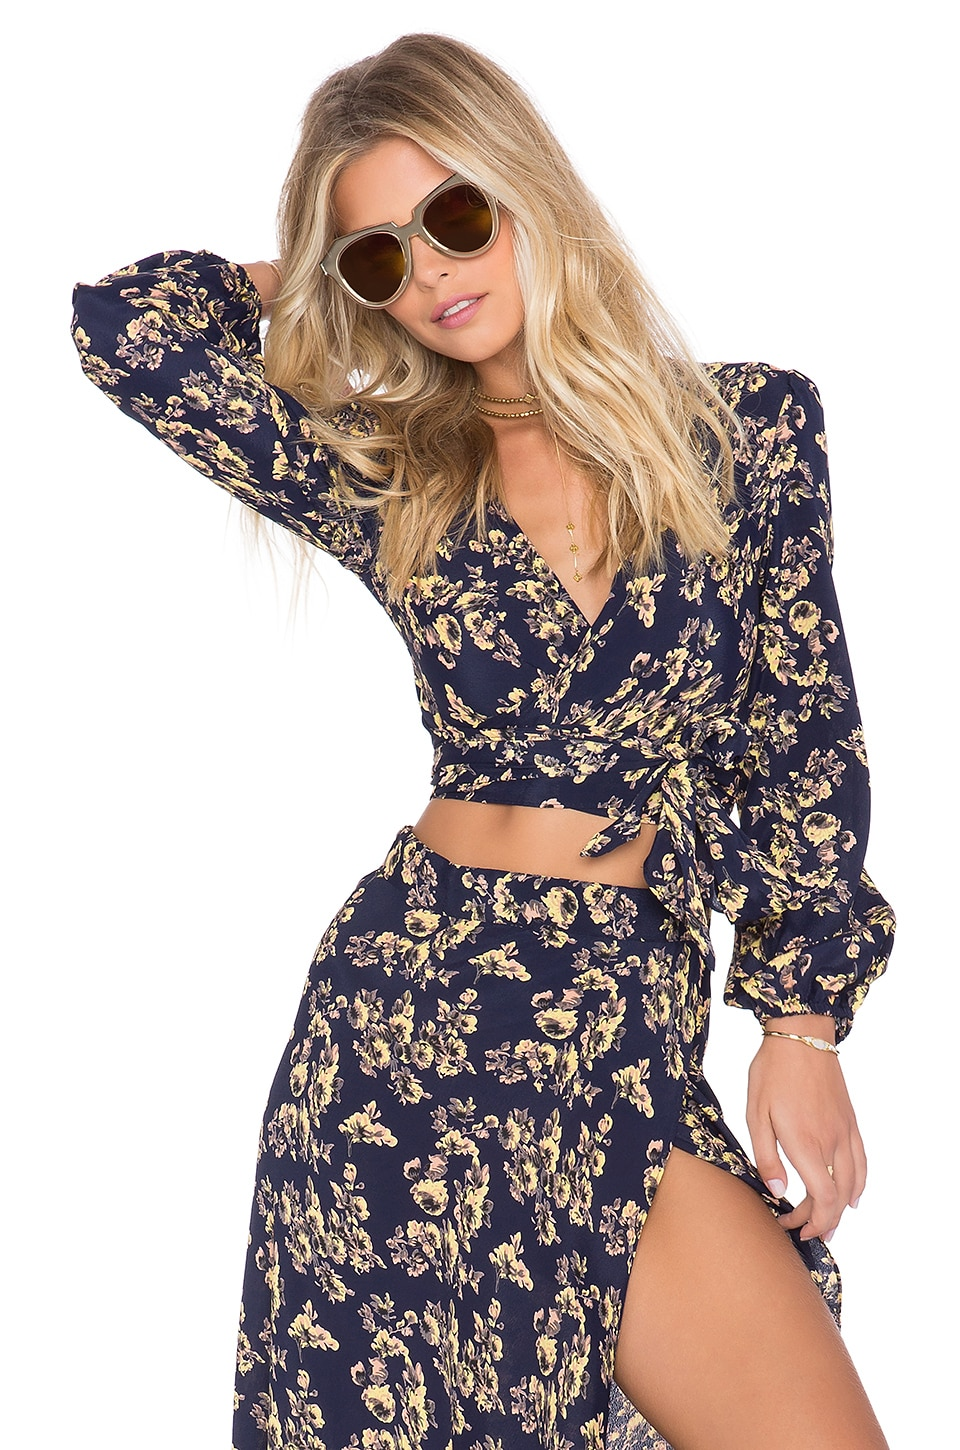 FLYNN SKYE x REVOLVE Thats a Wrap Long Sleeve Top in Twilight